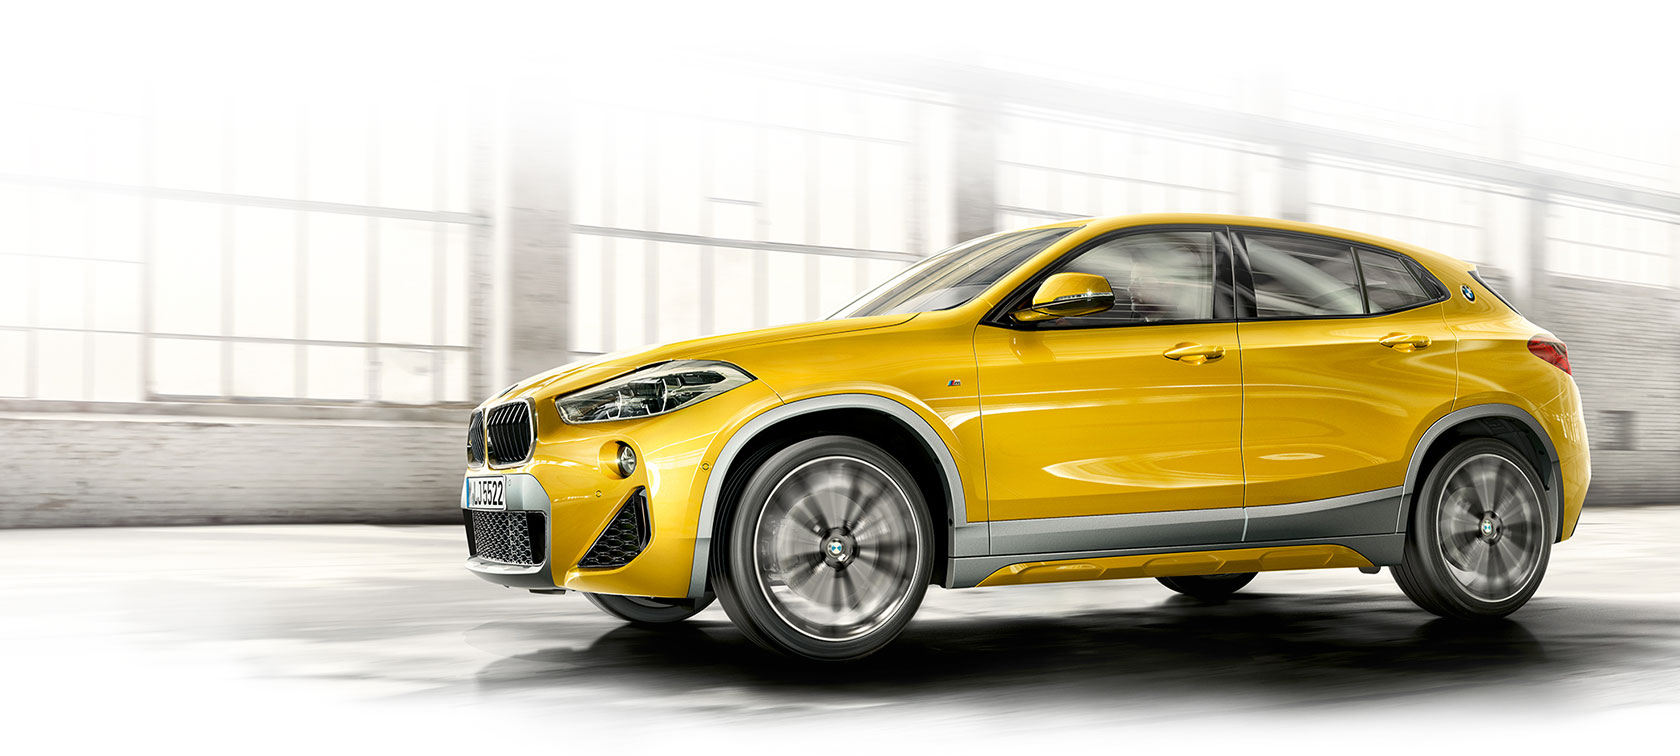 Tekniske data: BMW X2.